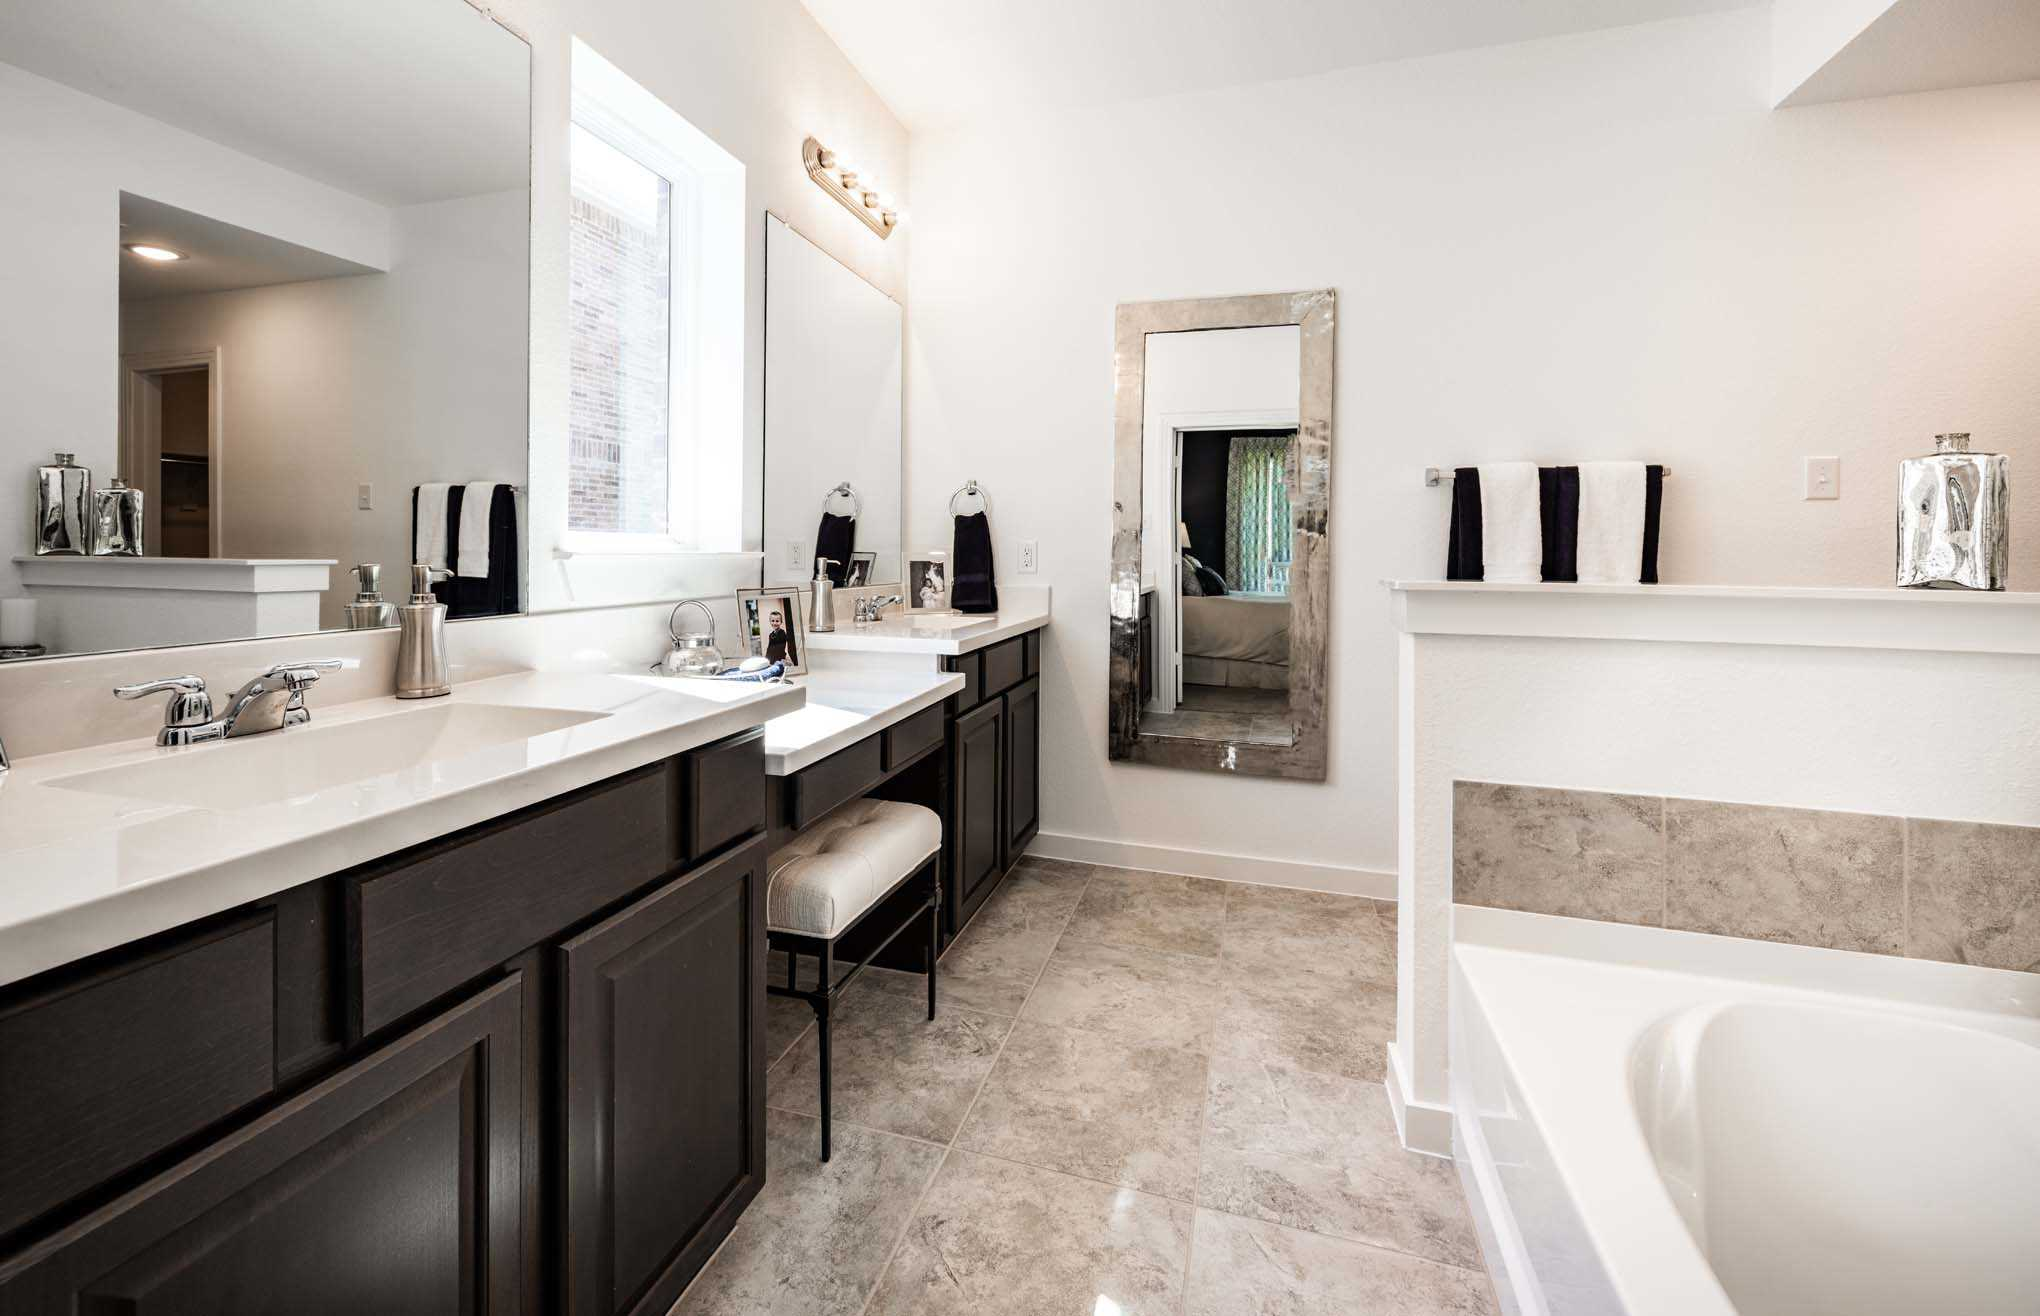 Bathroom featured in the Plan Yorkshire By Highland Homes in Dallas, TX